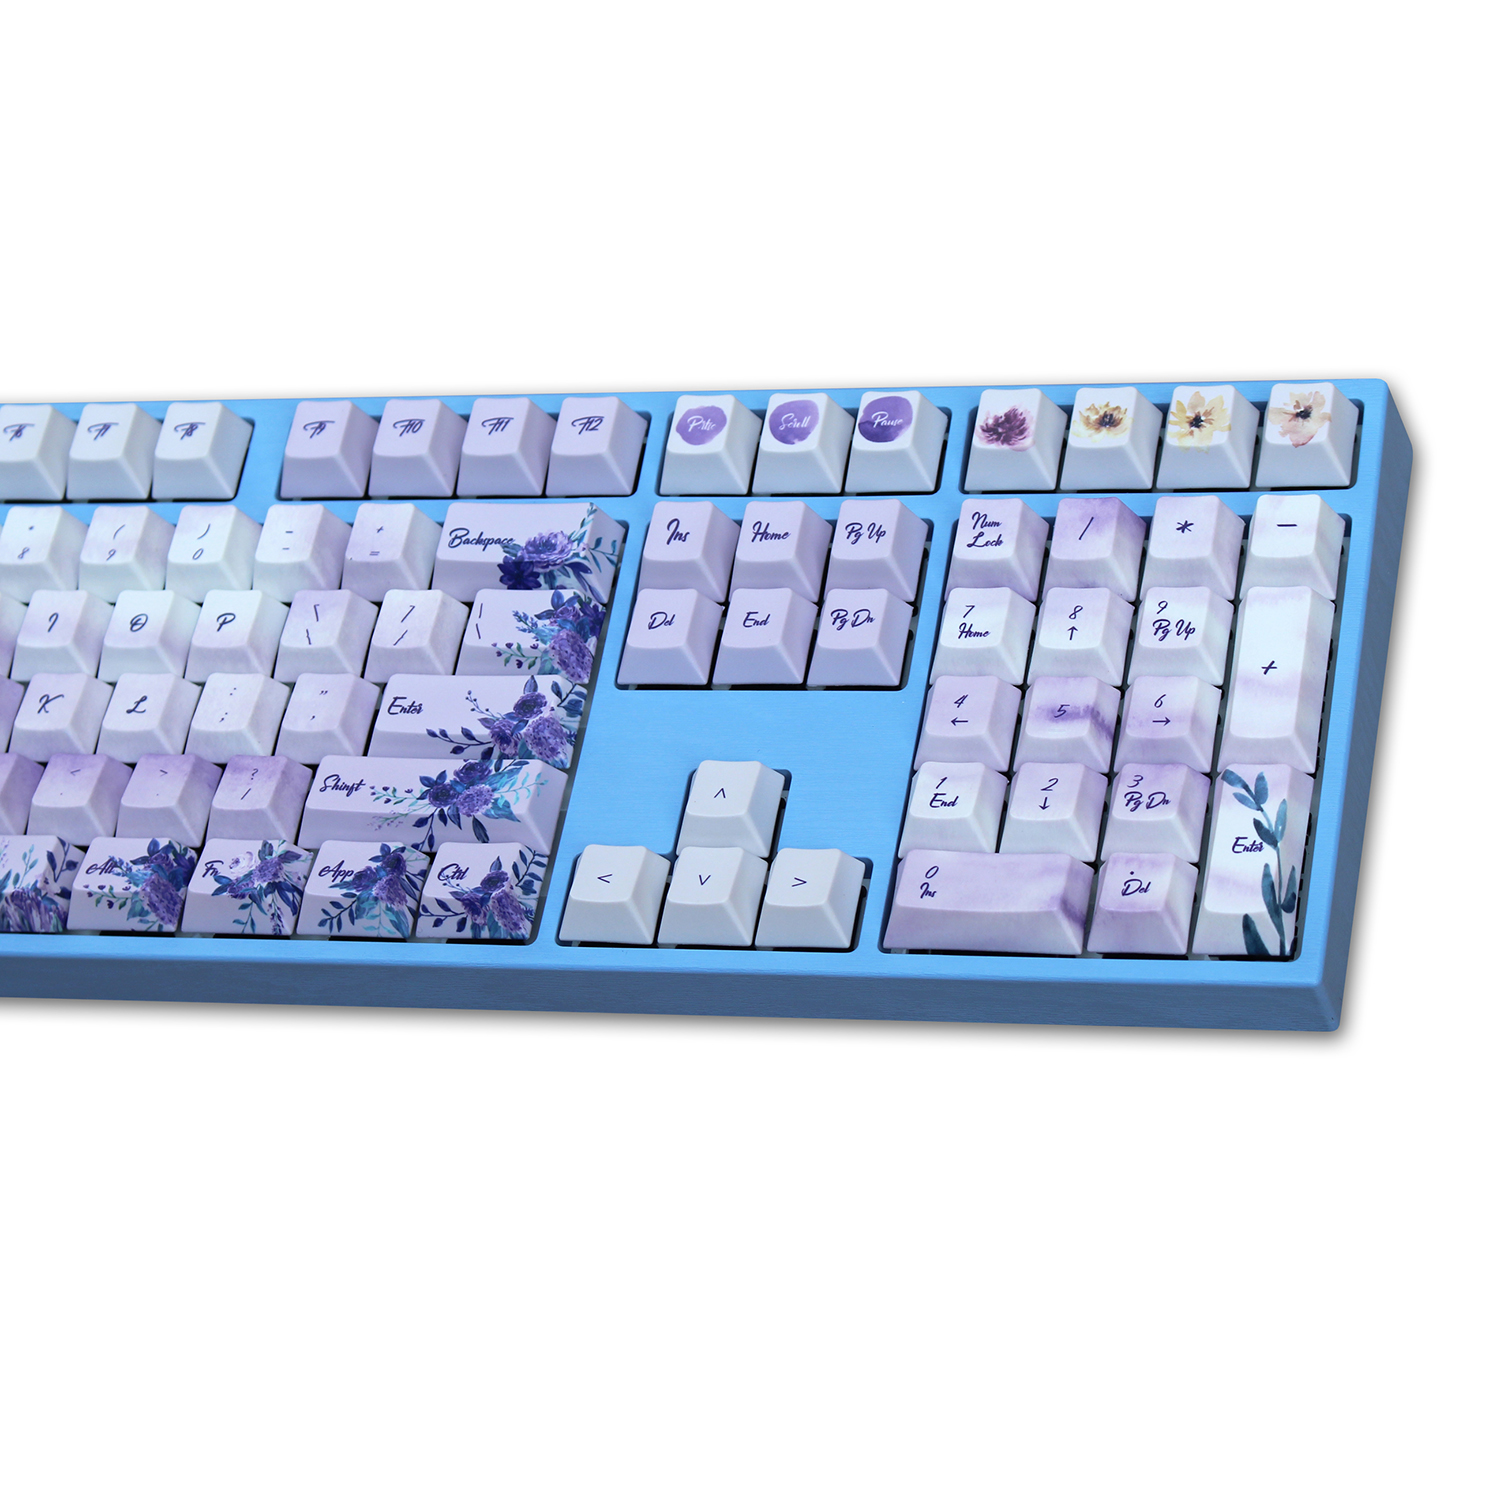 WIANXP purple five surface sublimation cherry profile 108 135 keys for mx switch mechanical keyboard Only selling keycap in Keyboards from Computer Office